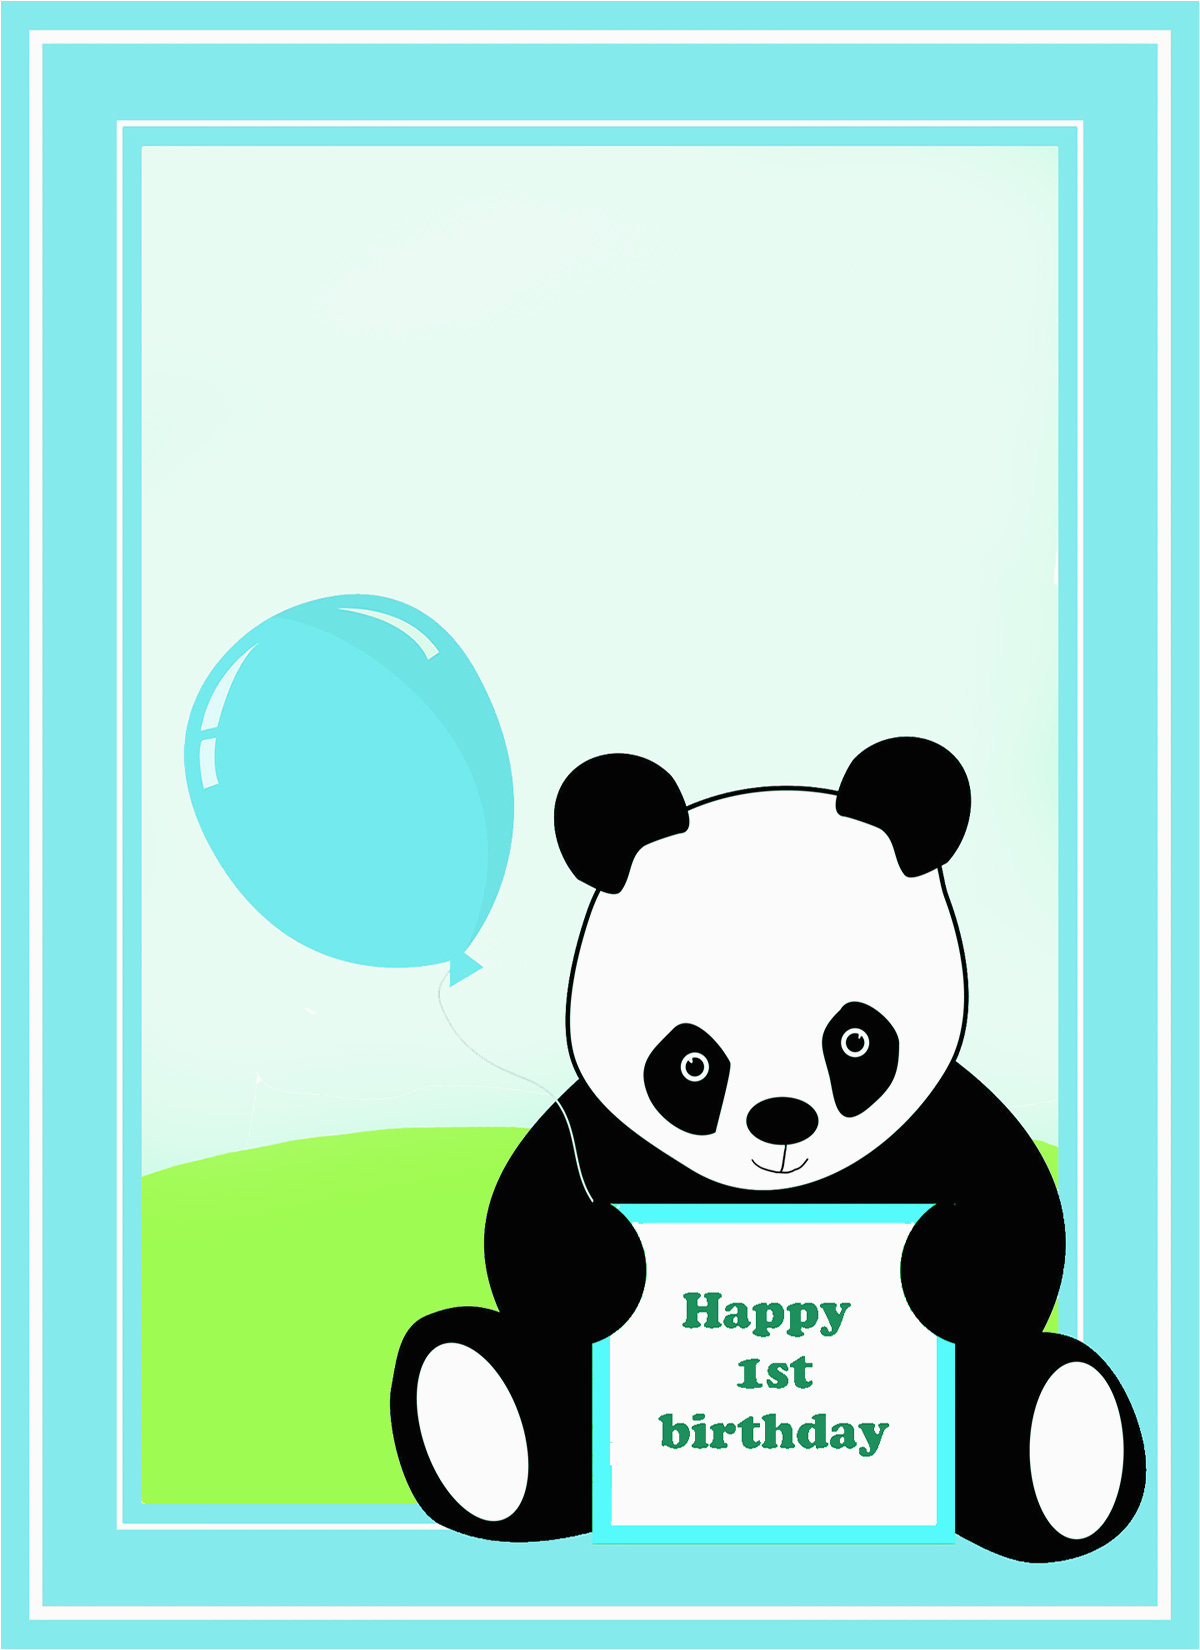 Panda Birthday Card Template | Birthdaybuzz - Panda Bear Invitations Free Printable